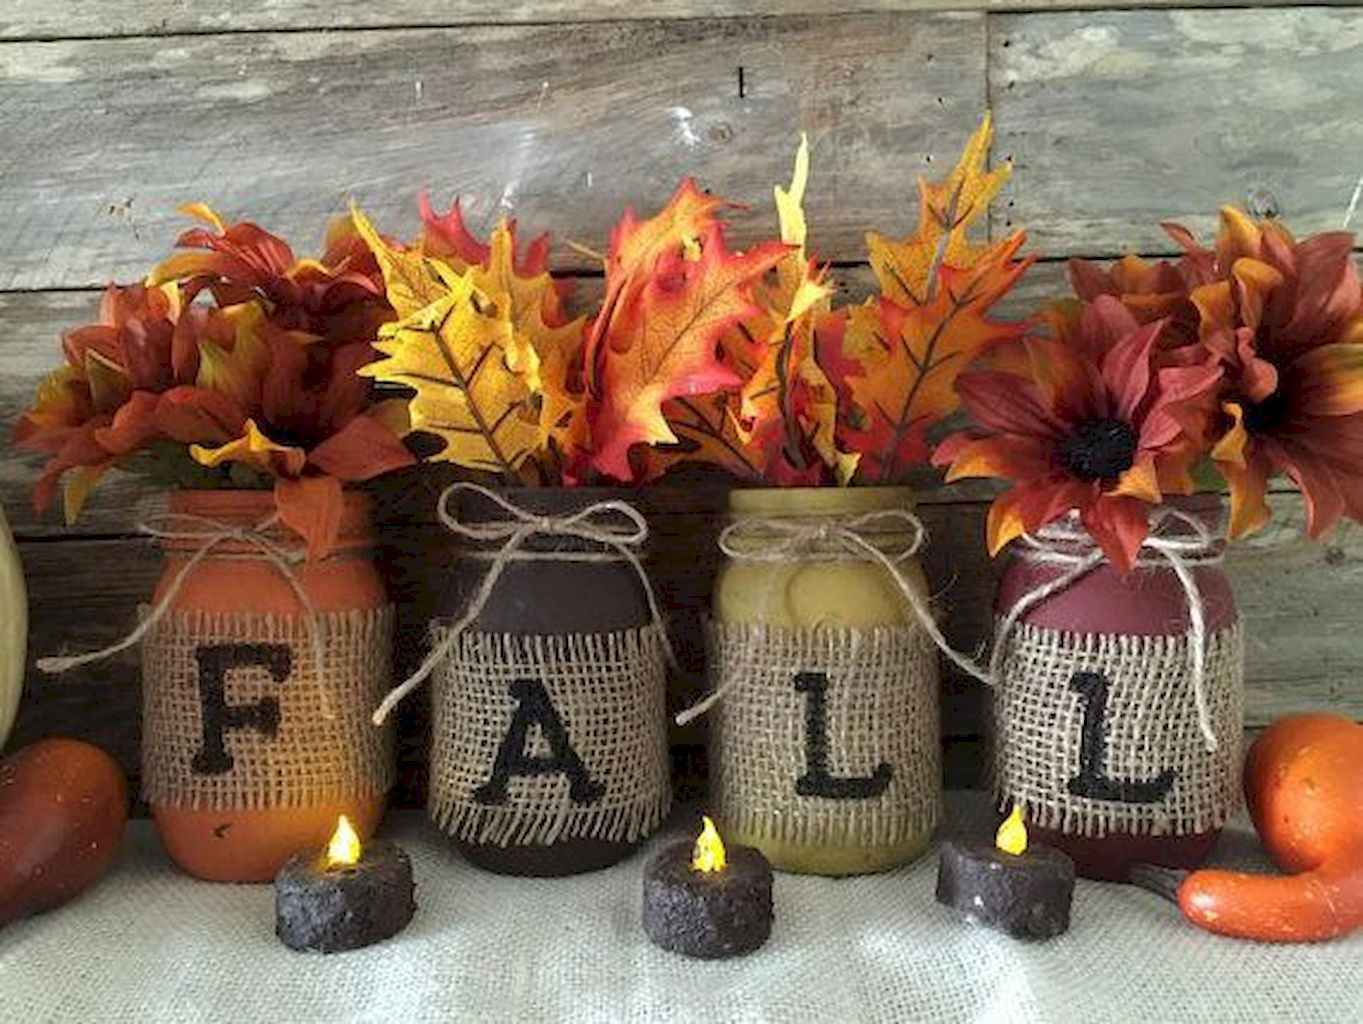 12 unique and creative fall decorating ideas to make yours unforgettable (5)